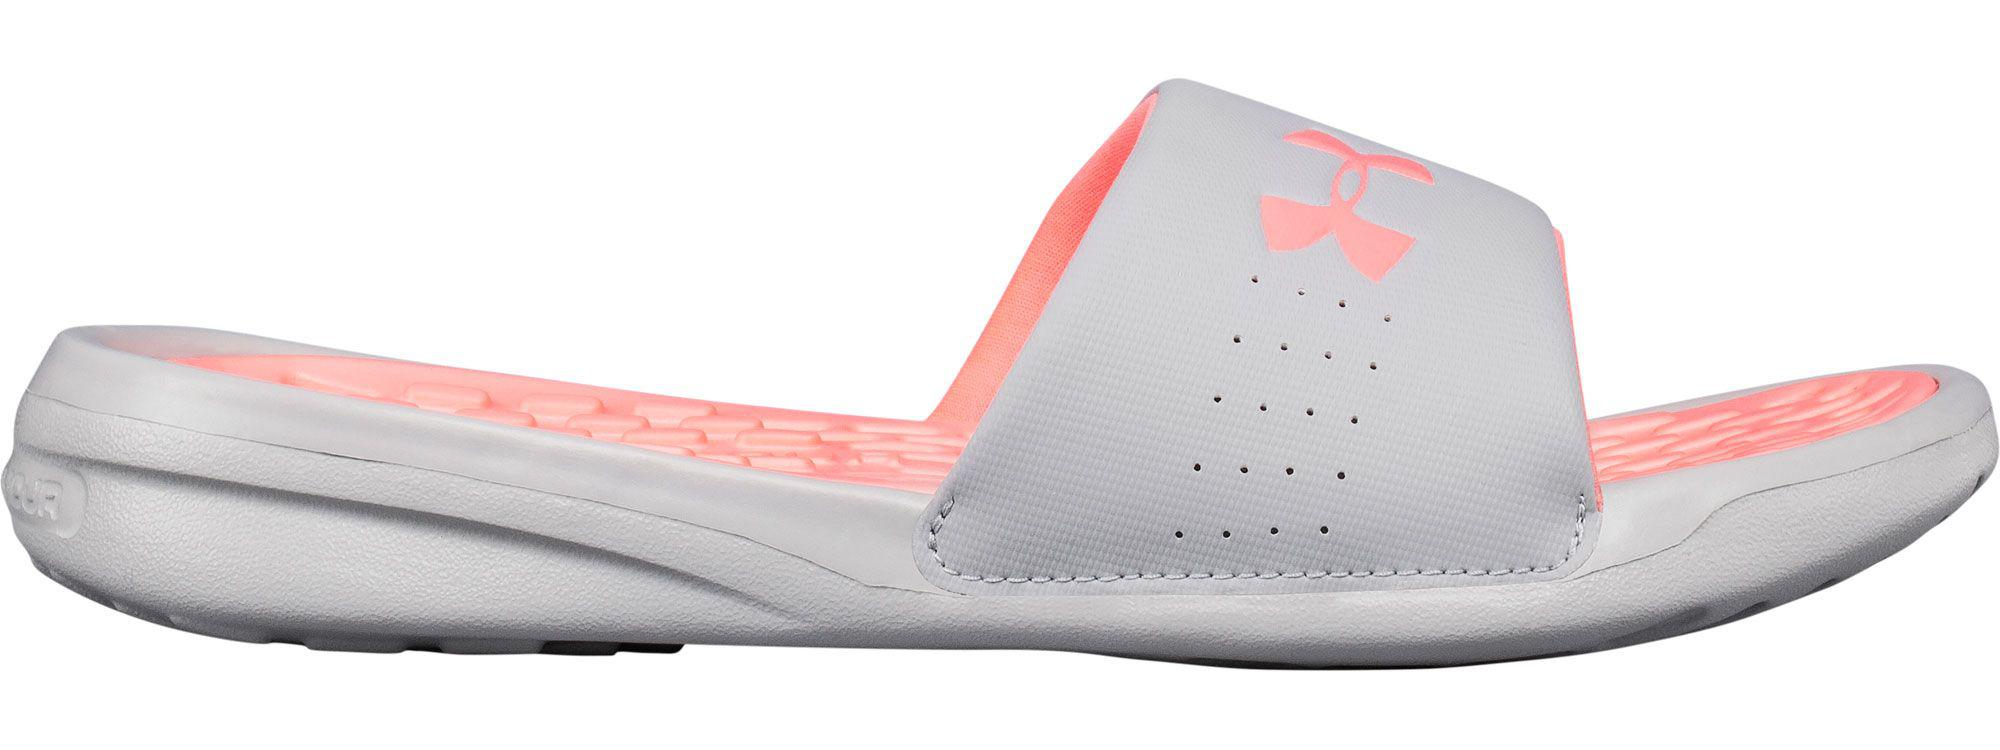 Under Armour® Debut Fix Slide Sandal VD6jV1Y